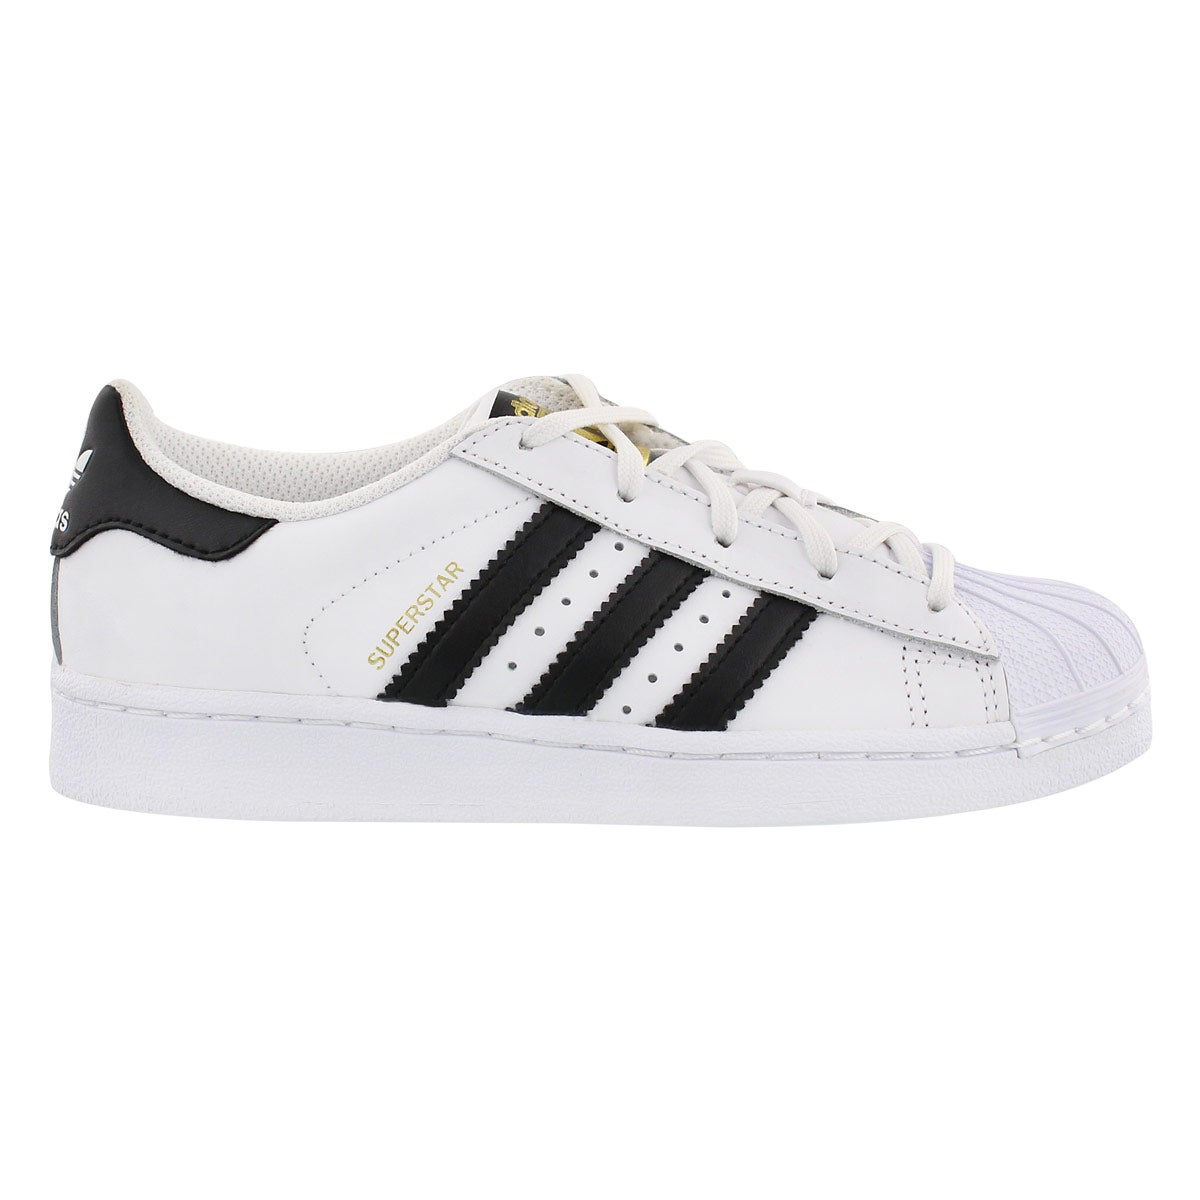 Chlds Superstar Foundation wht/blk shoe